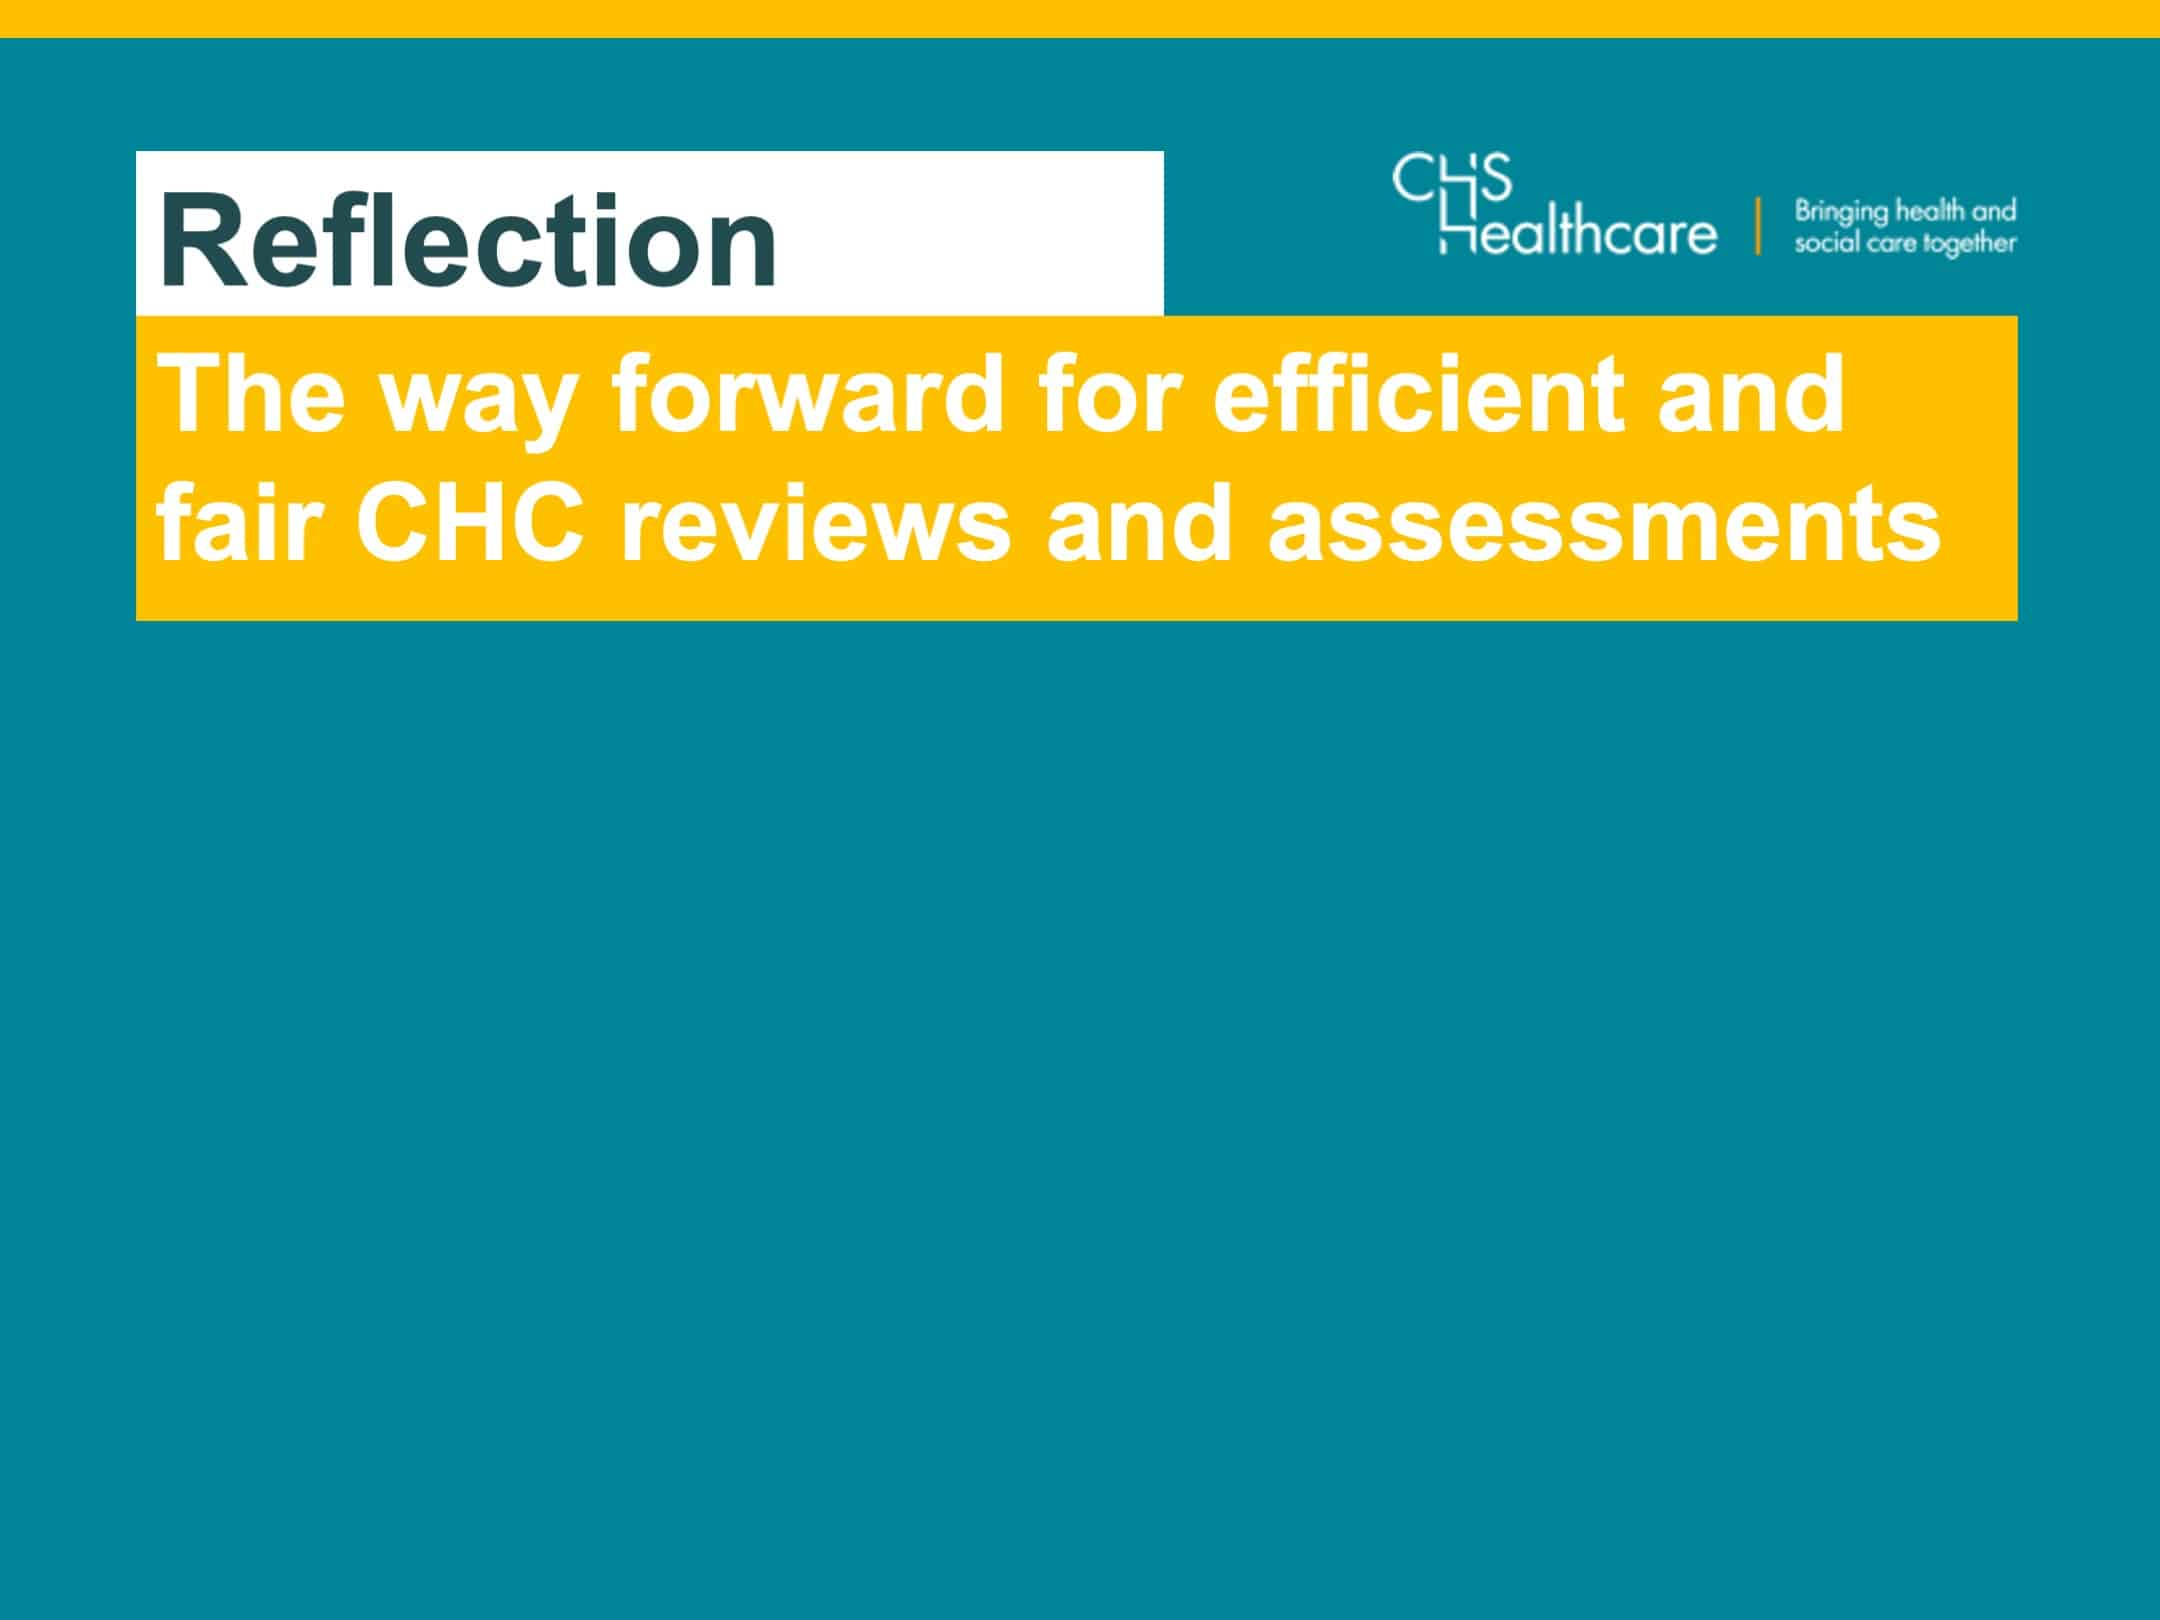 Practicality, priorities and pain: What is the way forward for efficient and fair CHC reviews and assessments?